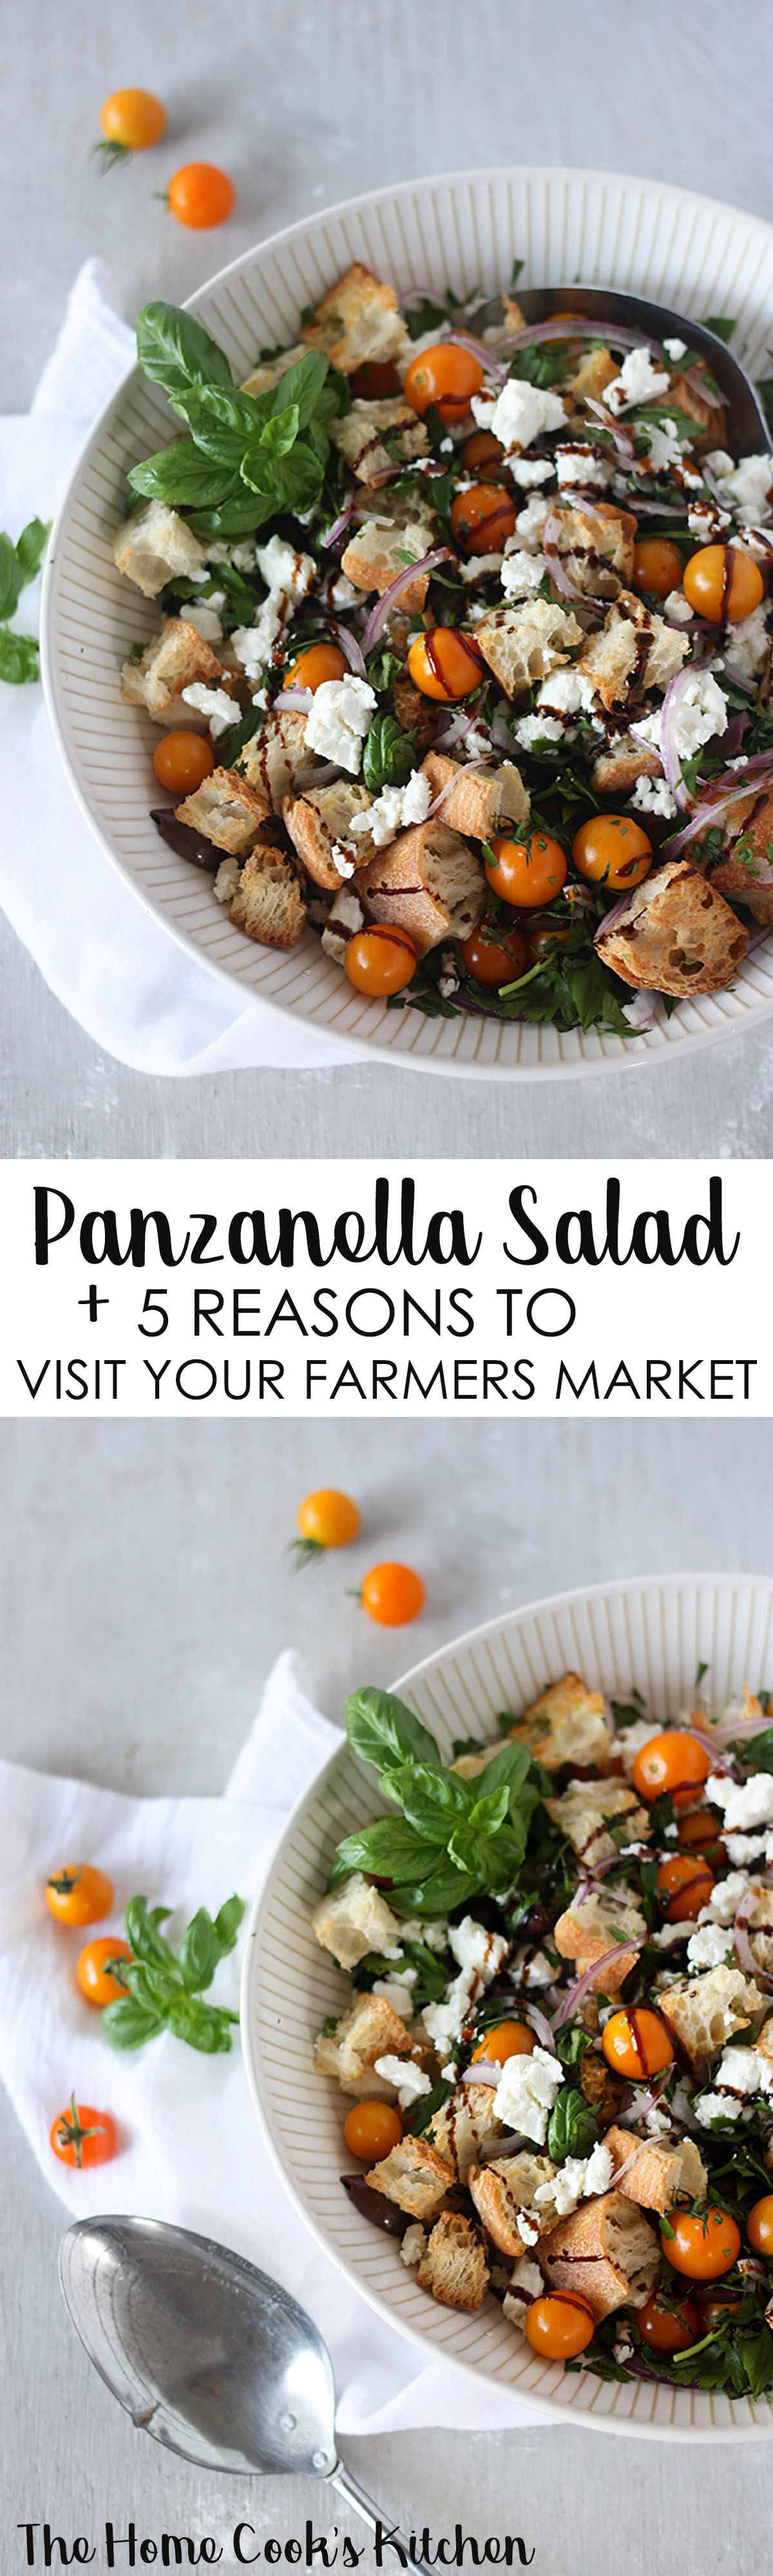 Panzanella Salad - simple, fresh and delicious, made with local farmers market produce www.thehomecookskitchen.com